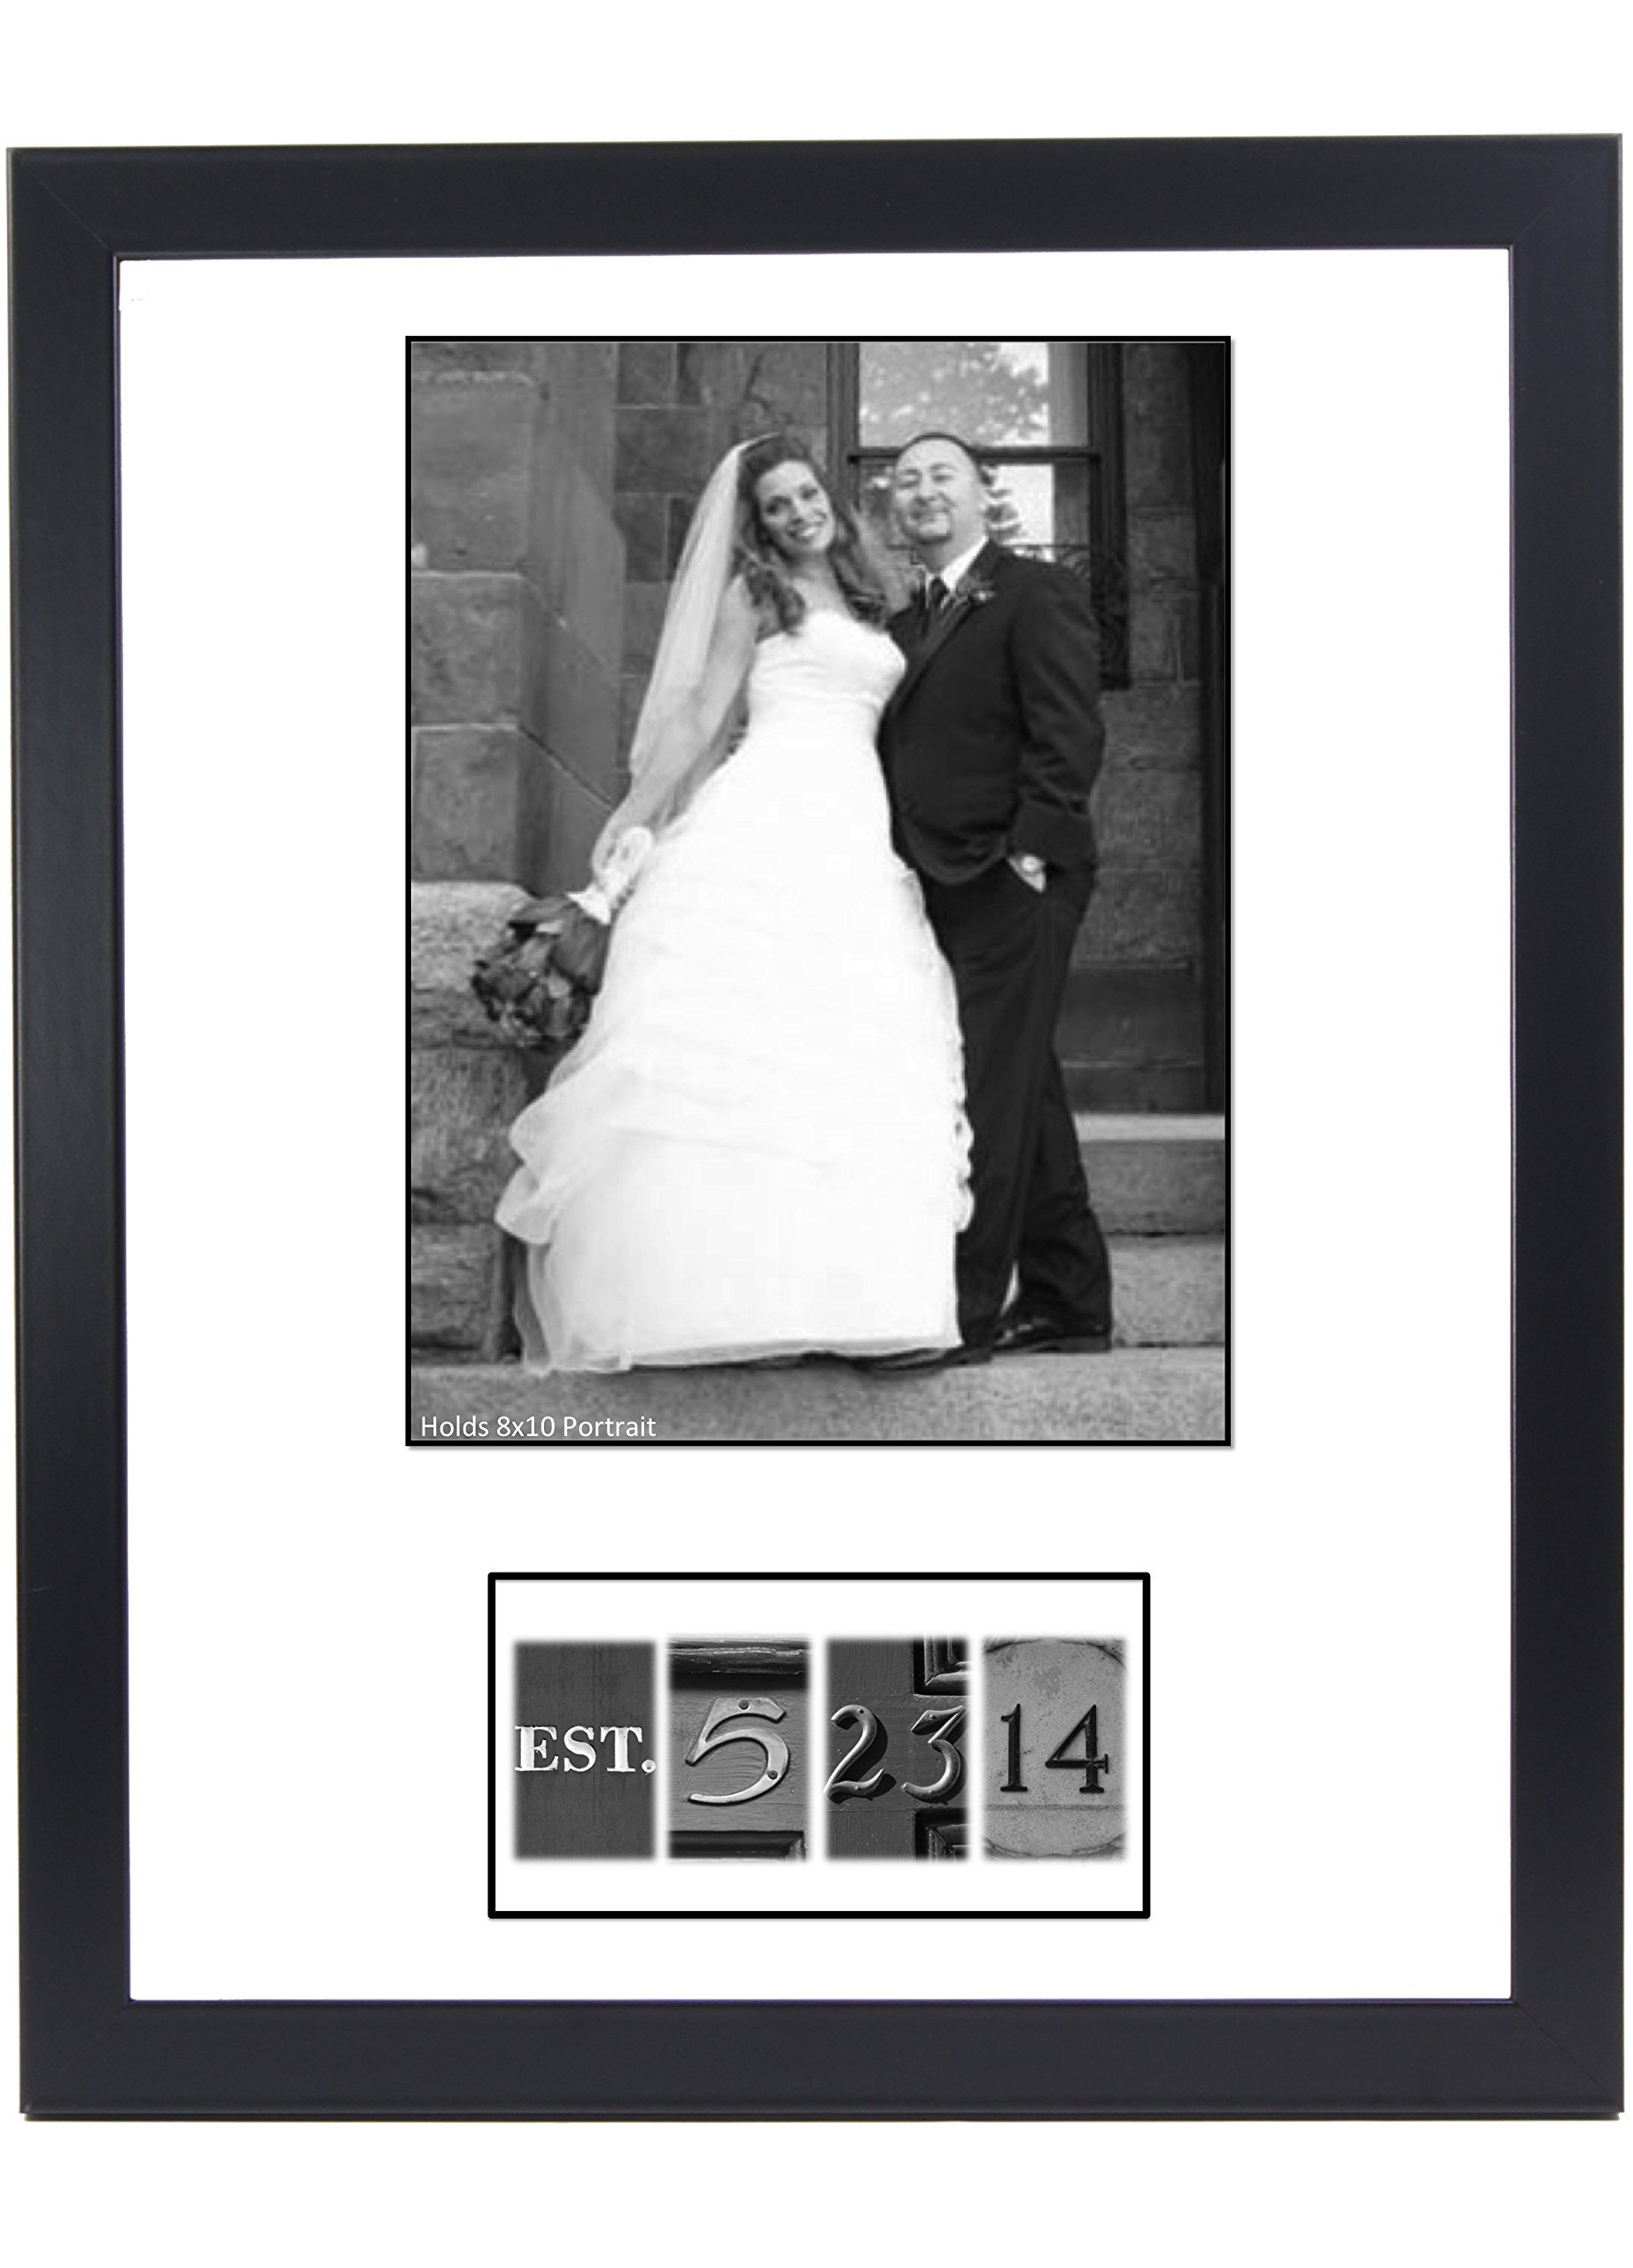 Dated Bride & Groom 8 by 10 inch Portrait Guest Book with DIY Unique Personalized Black & White Number Photographs, Cut and Tape- Including our 16 by 20 inch Frame w/ Hanger